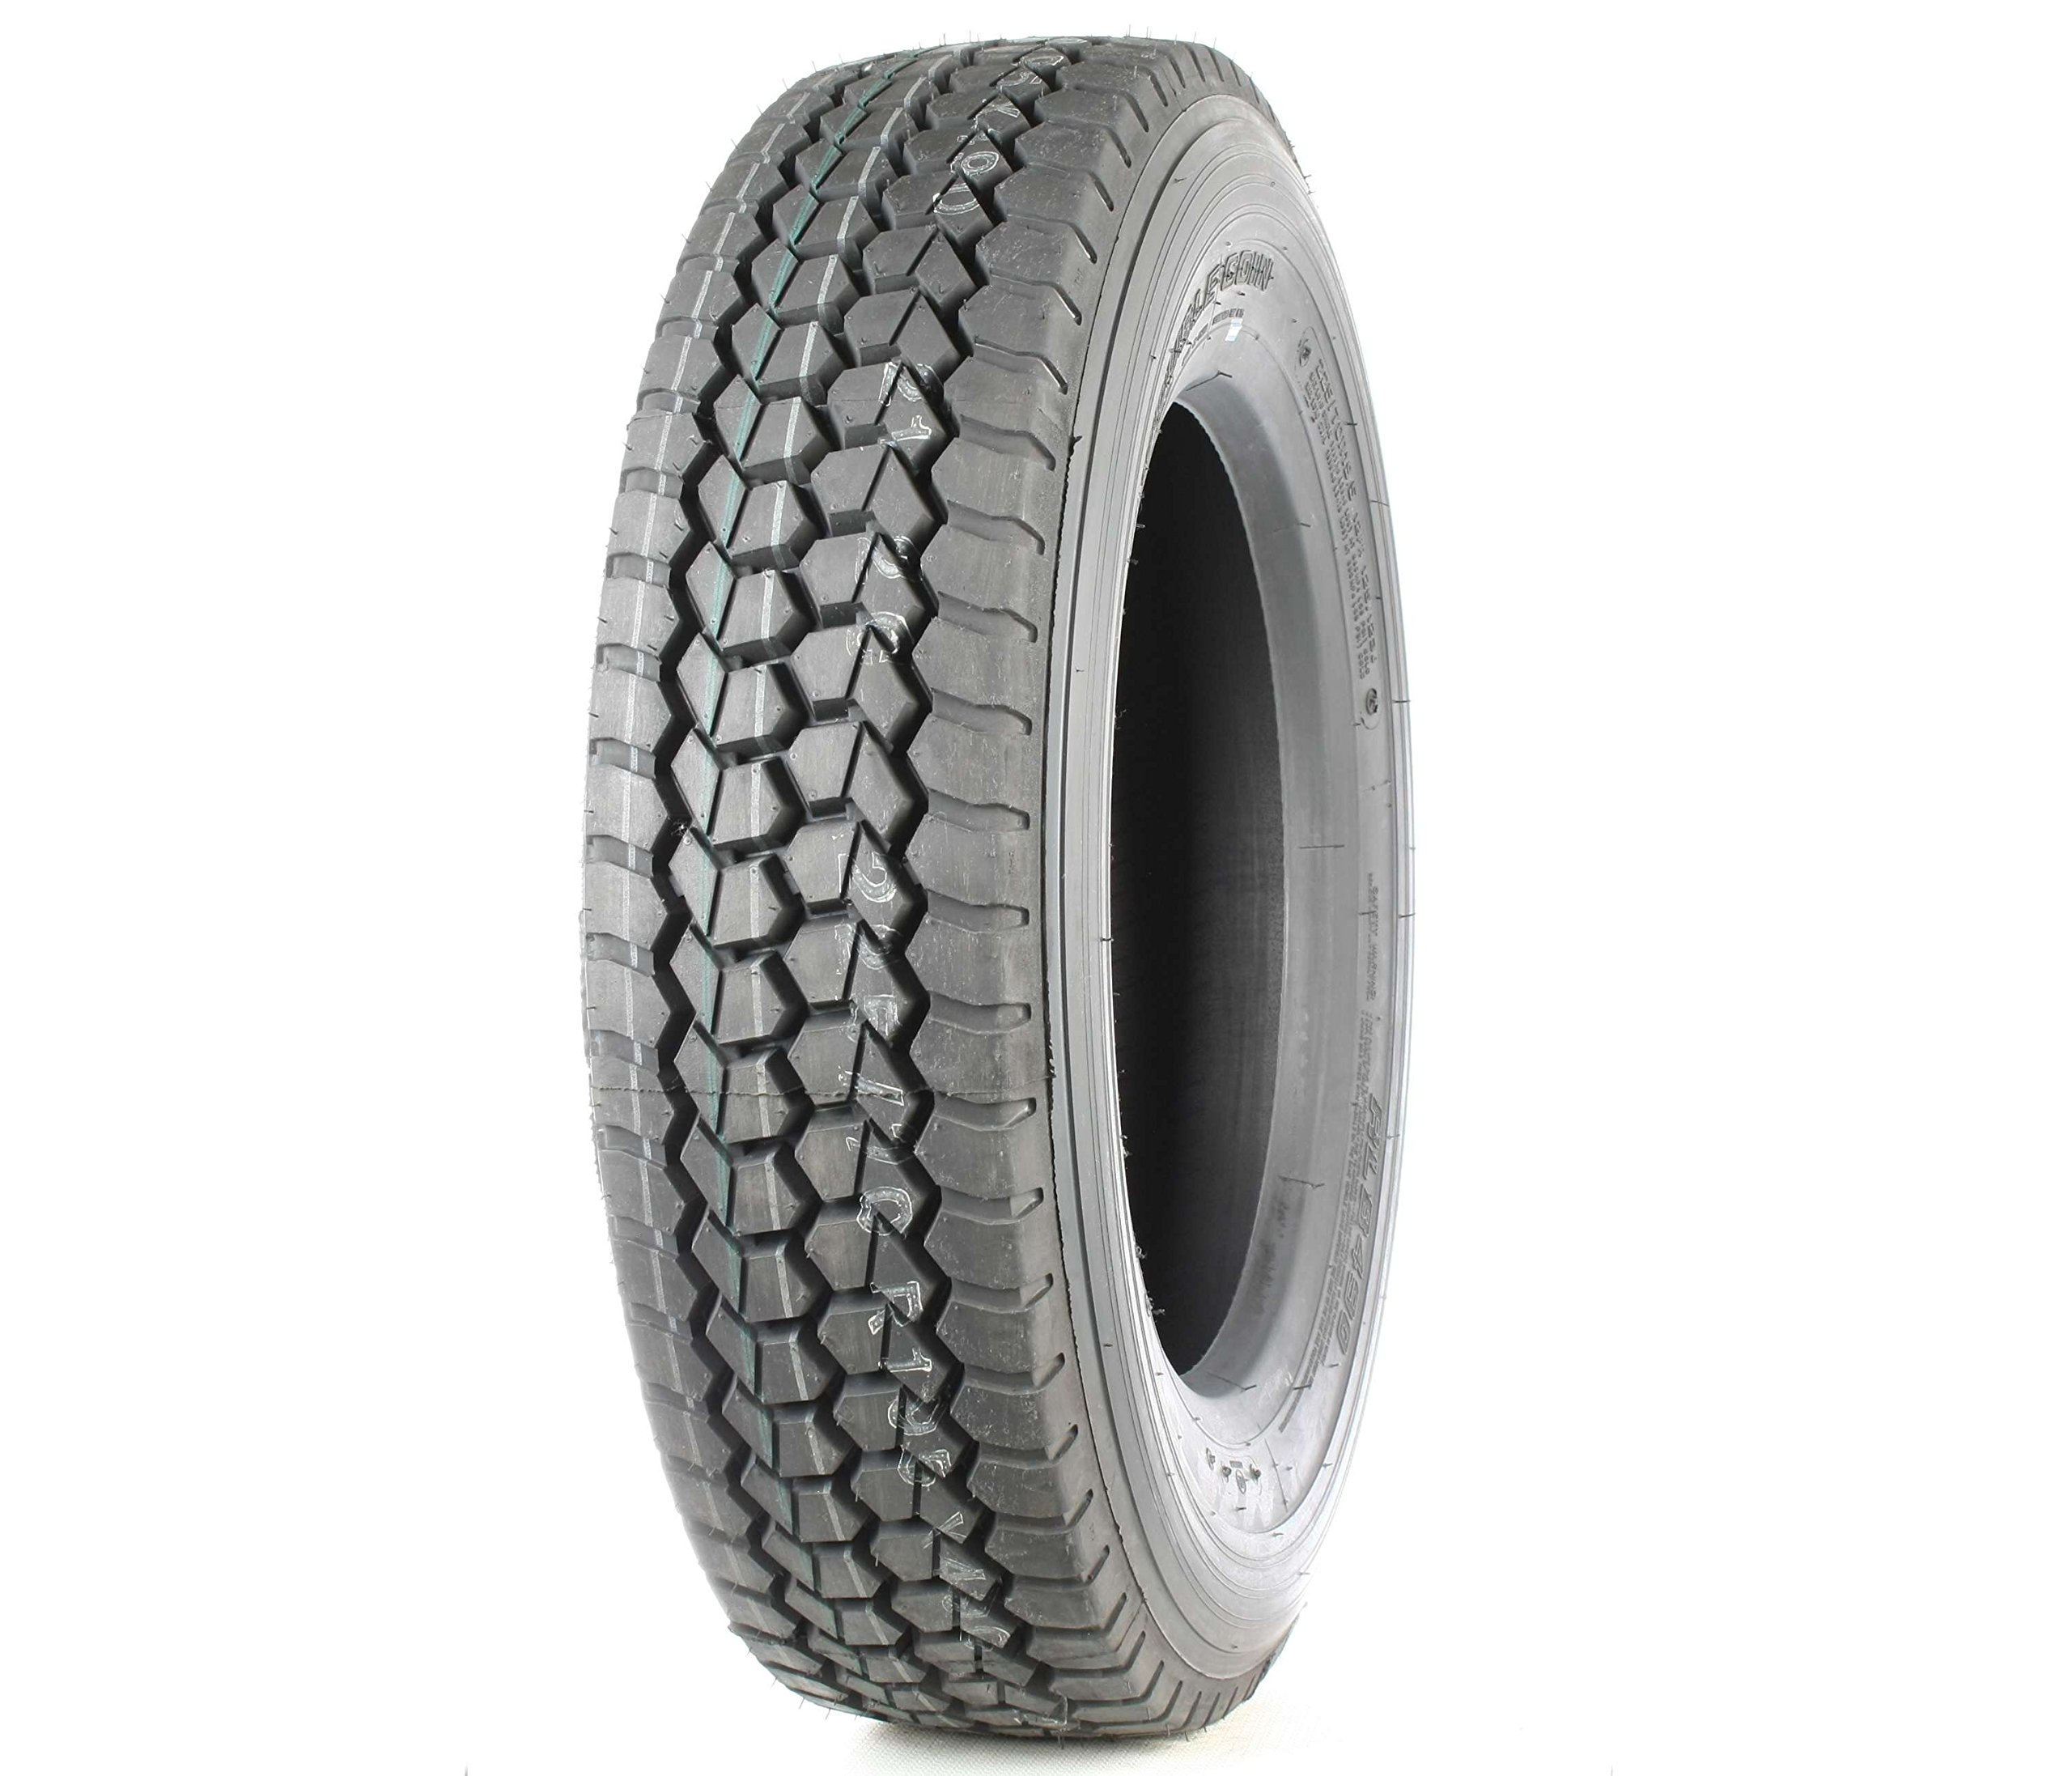 Double Coin RLB490 Low Profile Drive-Position Multi-Use Commercial Radial Truck Tire - 225/70R19.5 12 ply by Double Coin (Image #3)